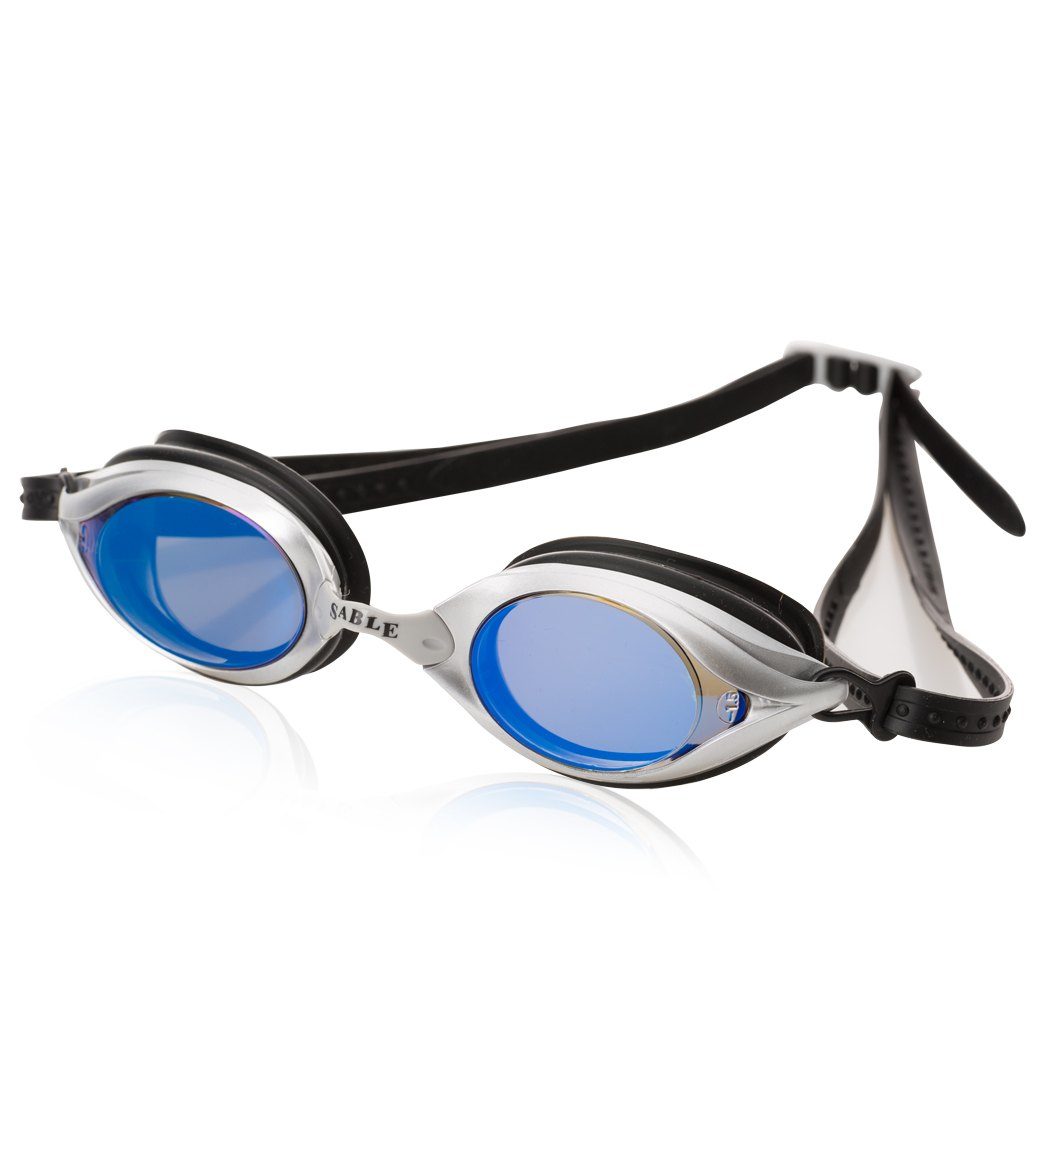 0f61e1a1d75 Sable Water Optics Mirrored Competition Goggle at SwimOutlet.com ...